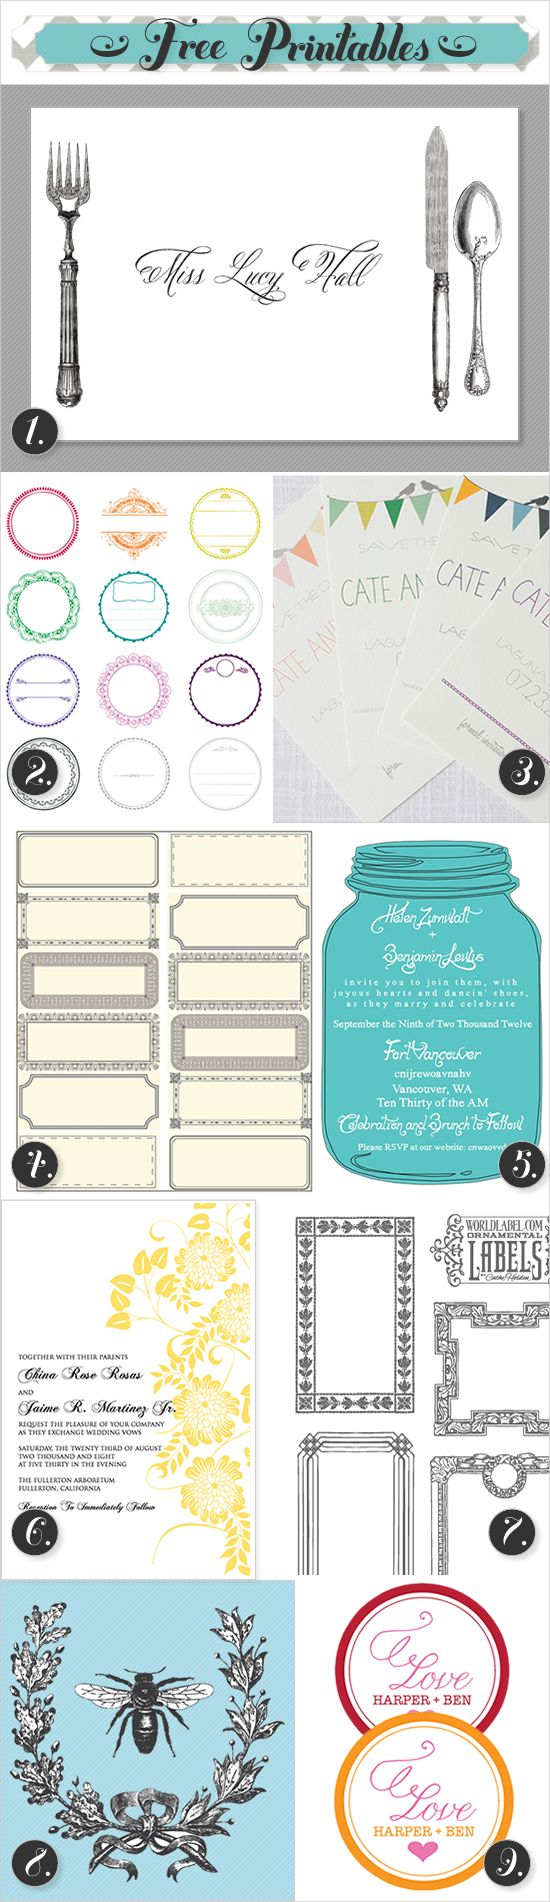 Free and downloadable templates